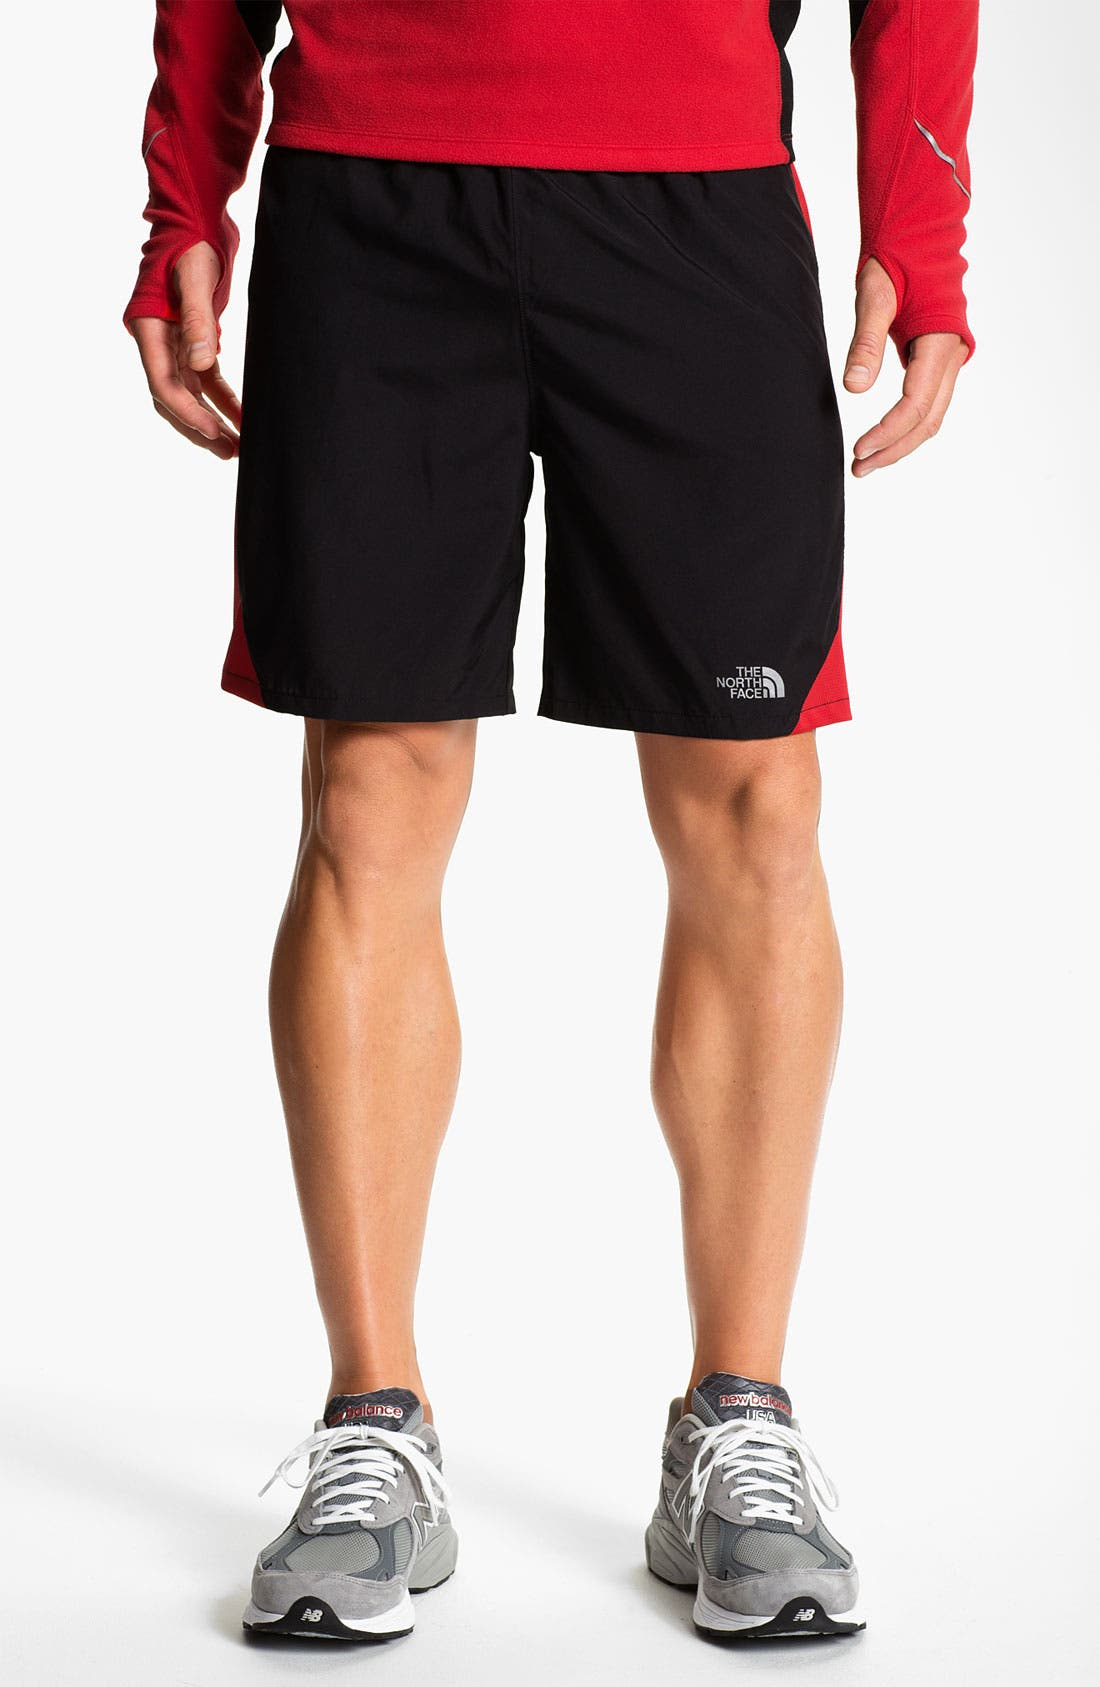 Alternate Image 1 Selected - The North Face 'GTD Flight Series ' Running Shorts